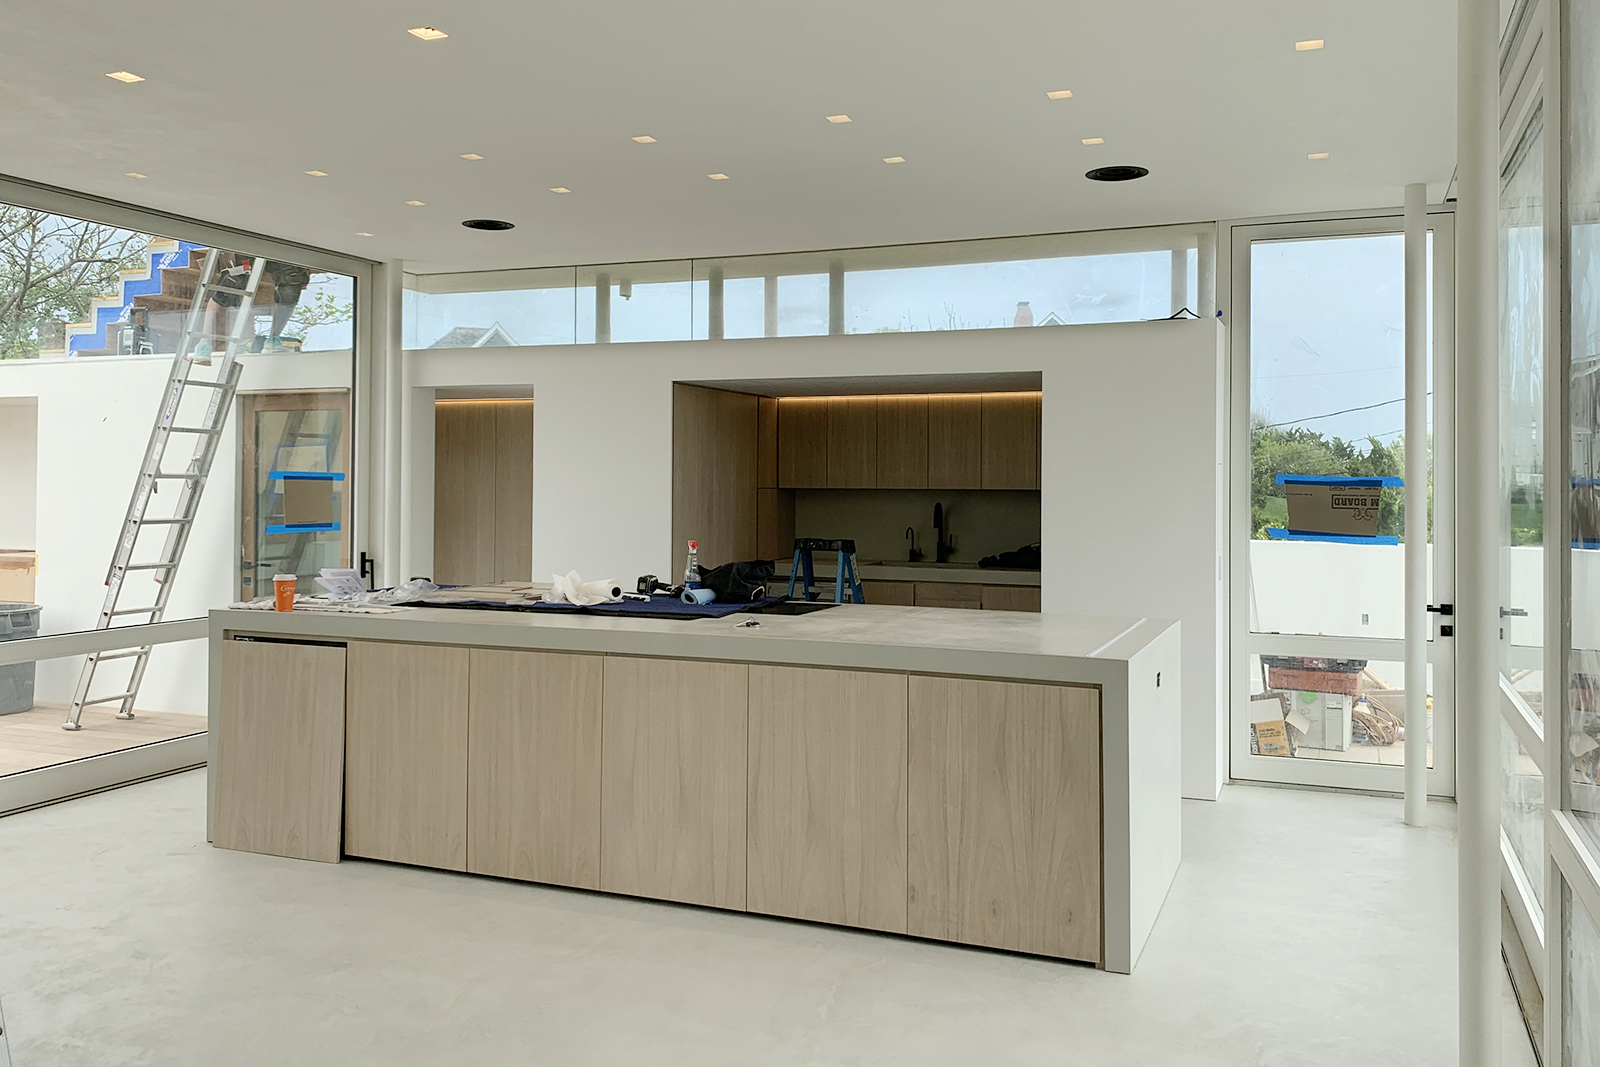 12-res4-resolution-4-architecture-surfside-modern-renovation-montauk-hamptons-ny-kitchen.jpg